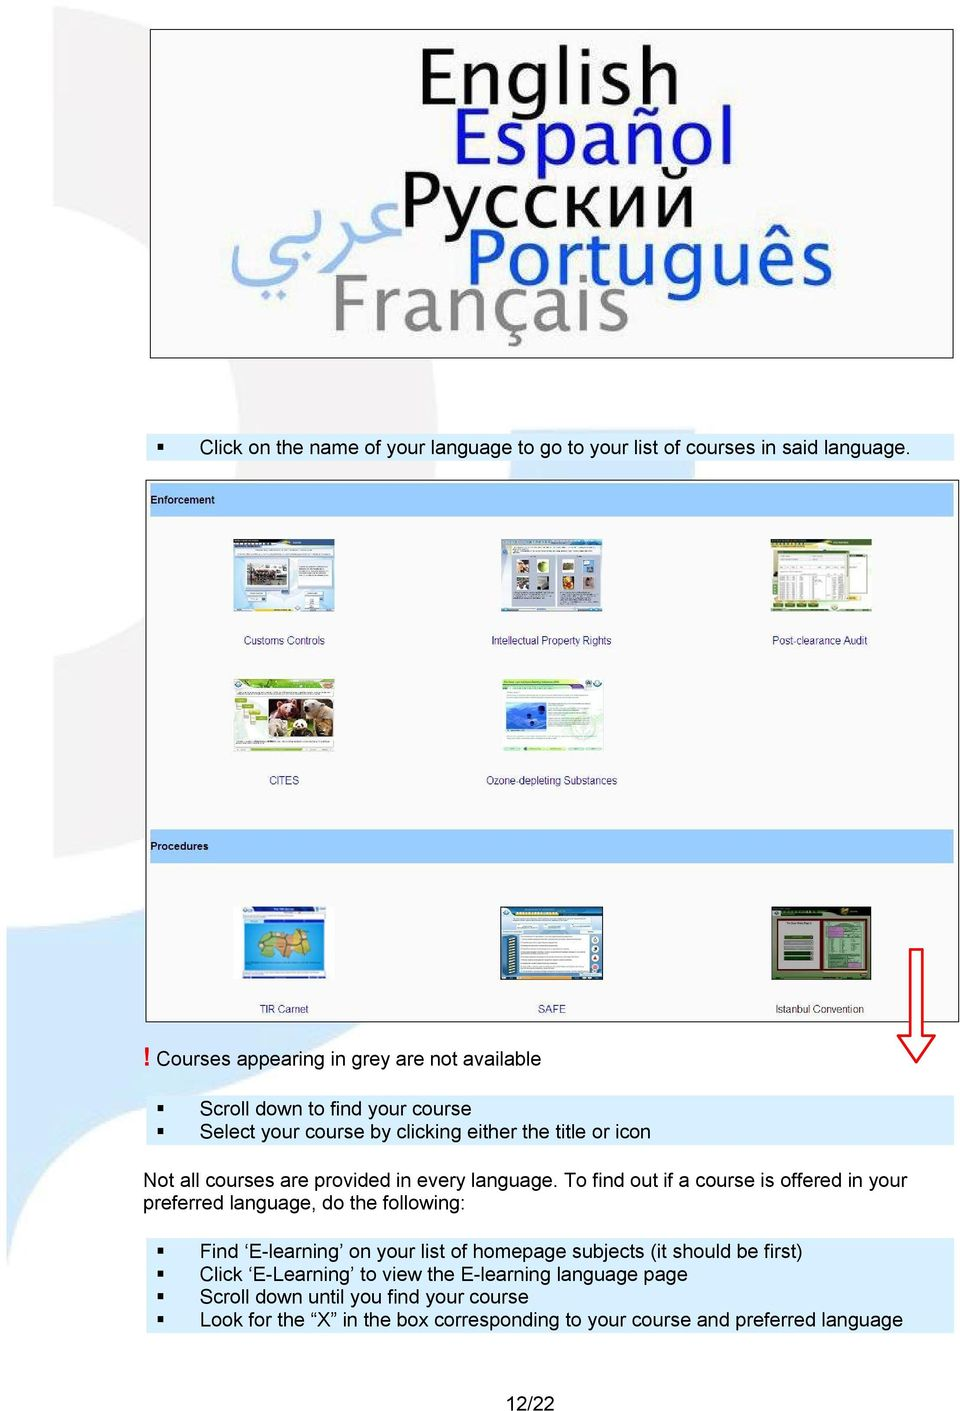 courses are provided in every language.